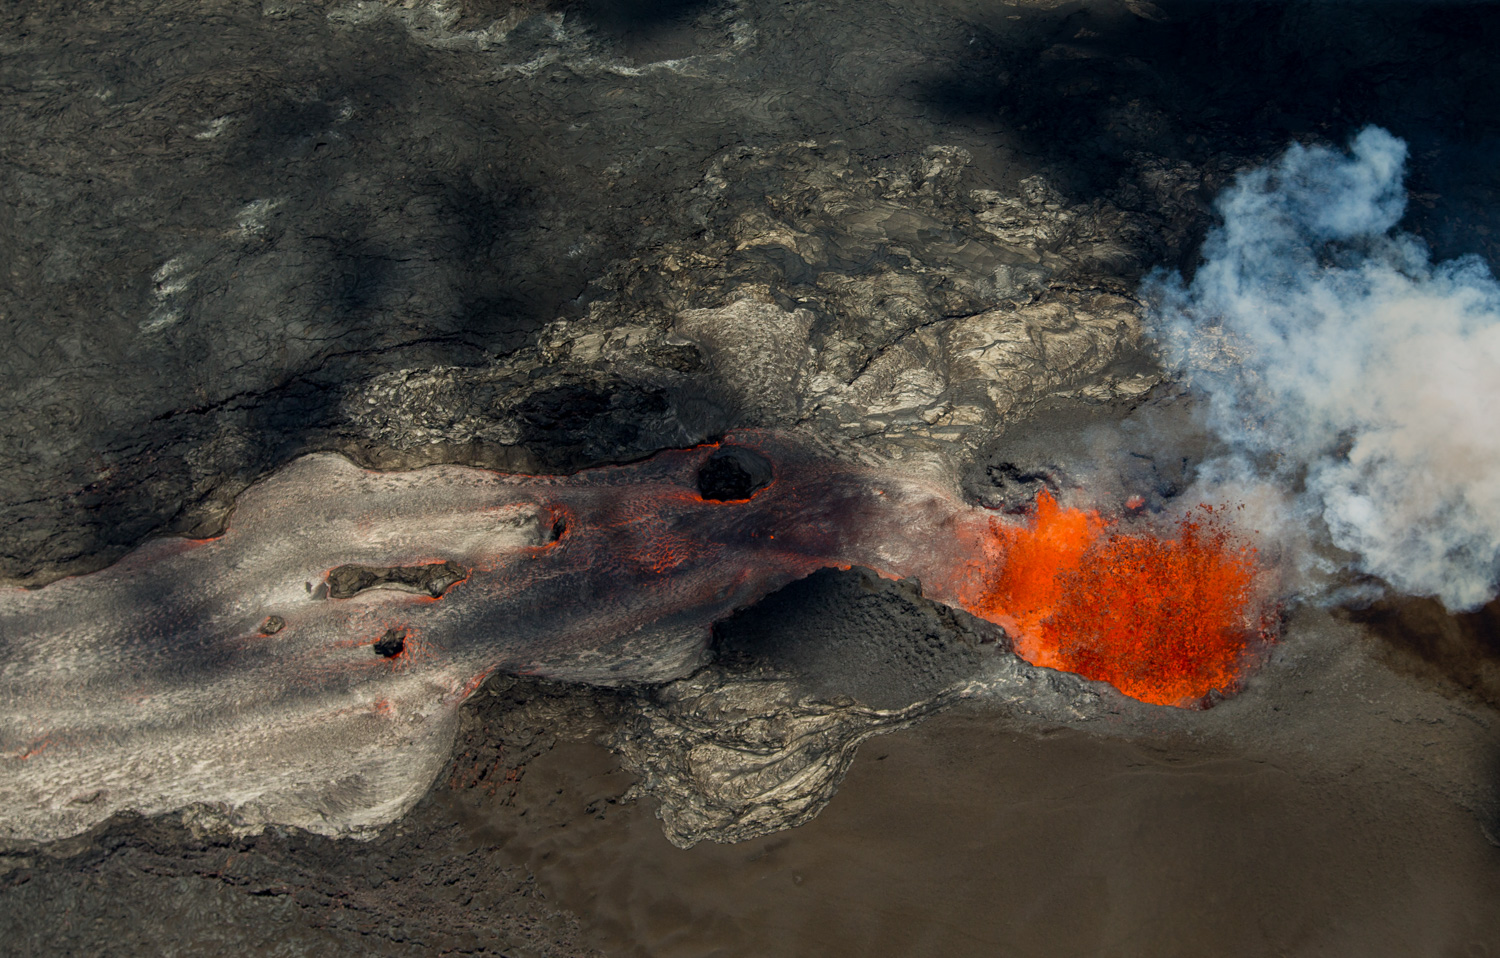 <div class='meta'><div class='origin-logo' data-origin='none'></div><span class='caption-text' data-credit='LE Baskow/AP Photo'>A fissure continues to blast lava several hundred feet in the air and flow towards Kapoho as the Kilauea Volcano lower east rift zone eruption continues on June 6, 2018, in Pahoa.</span></div>